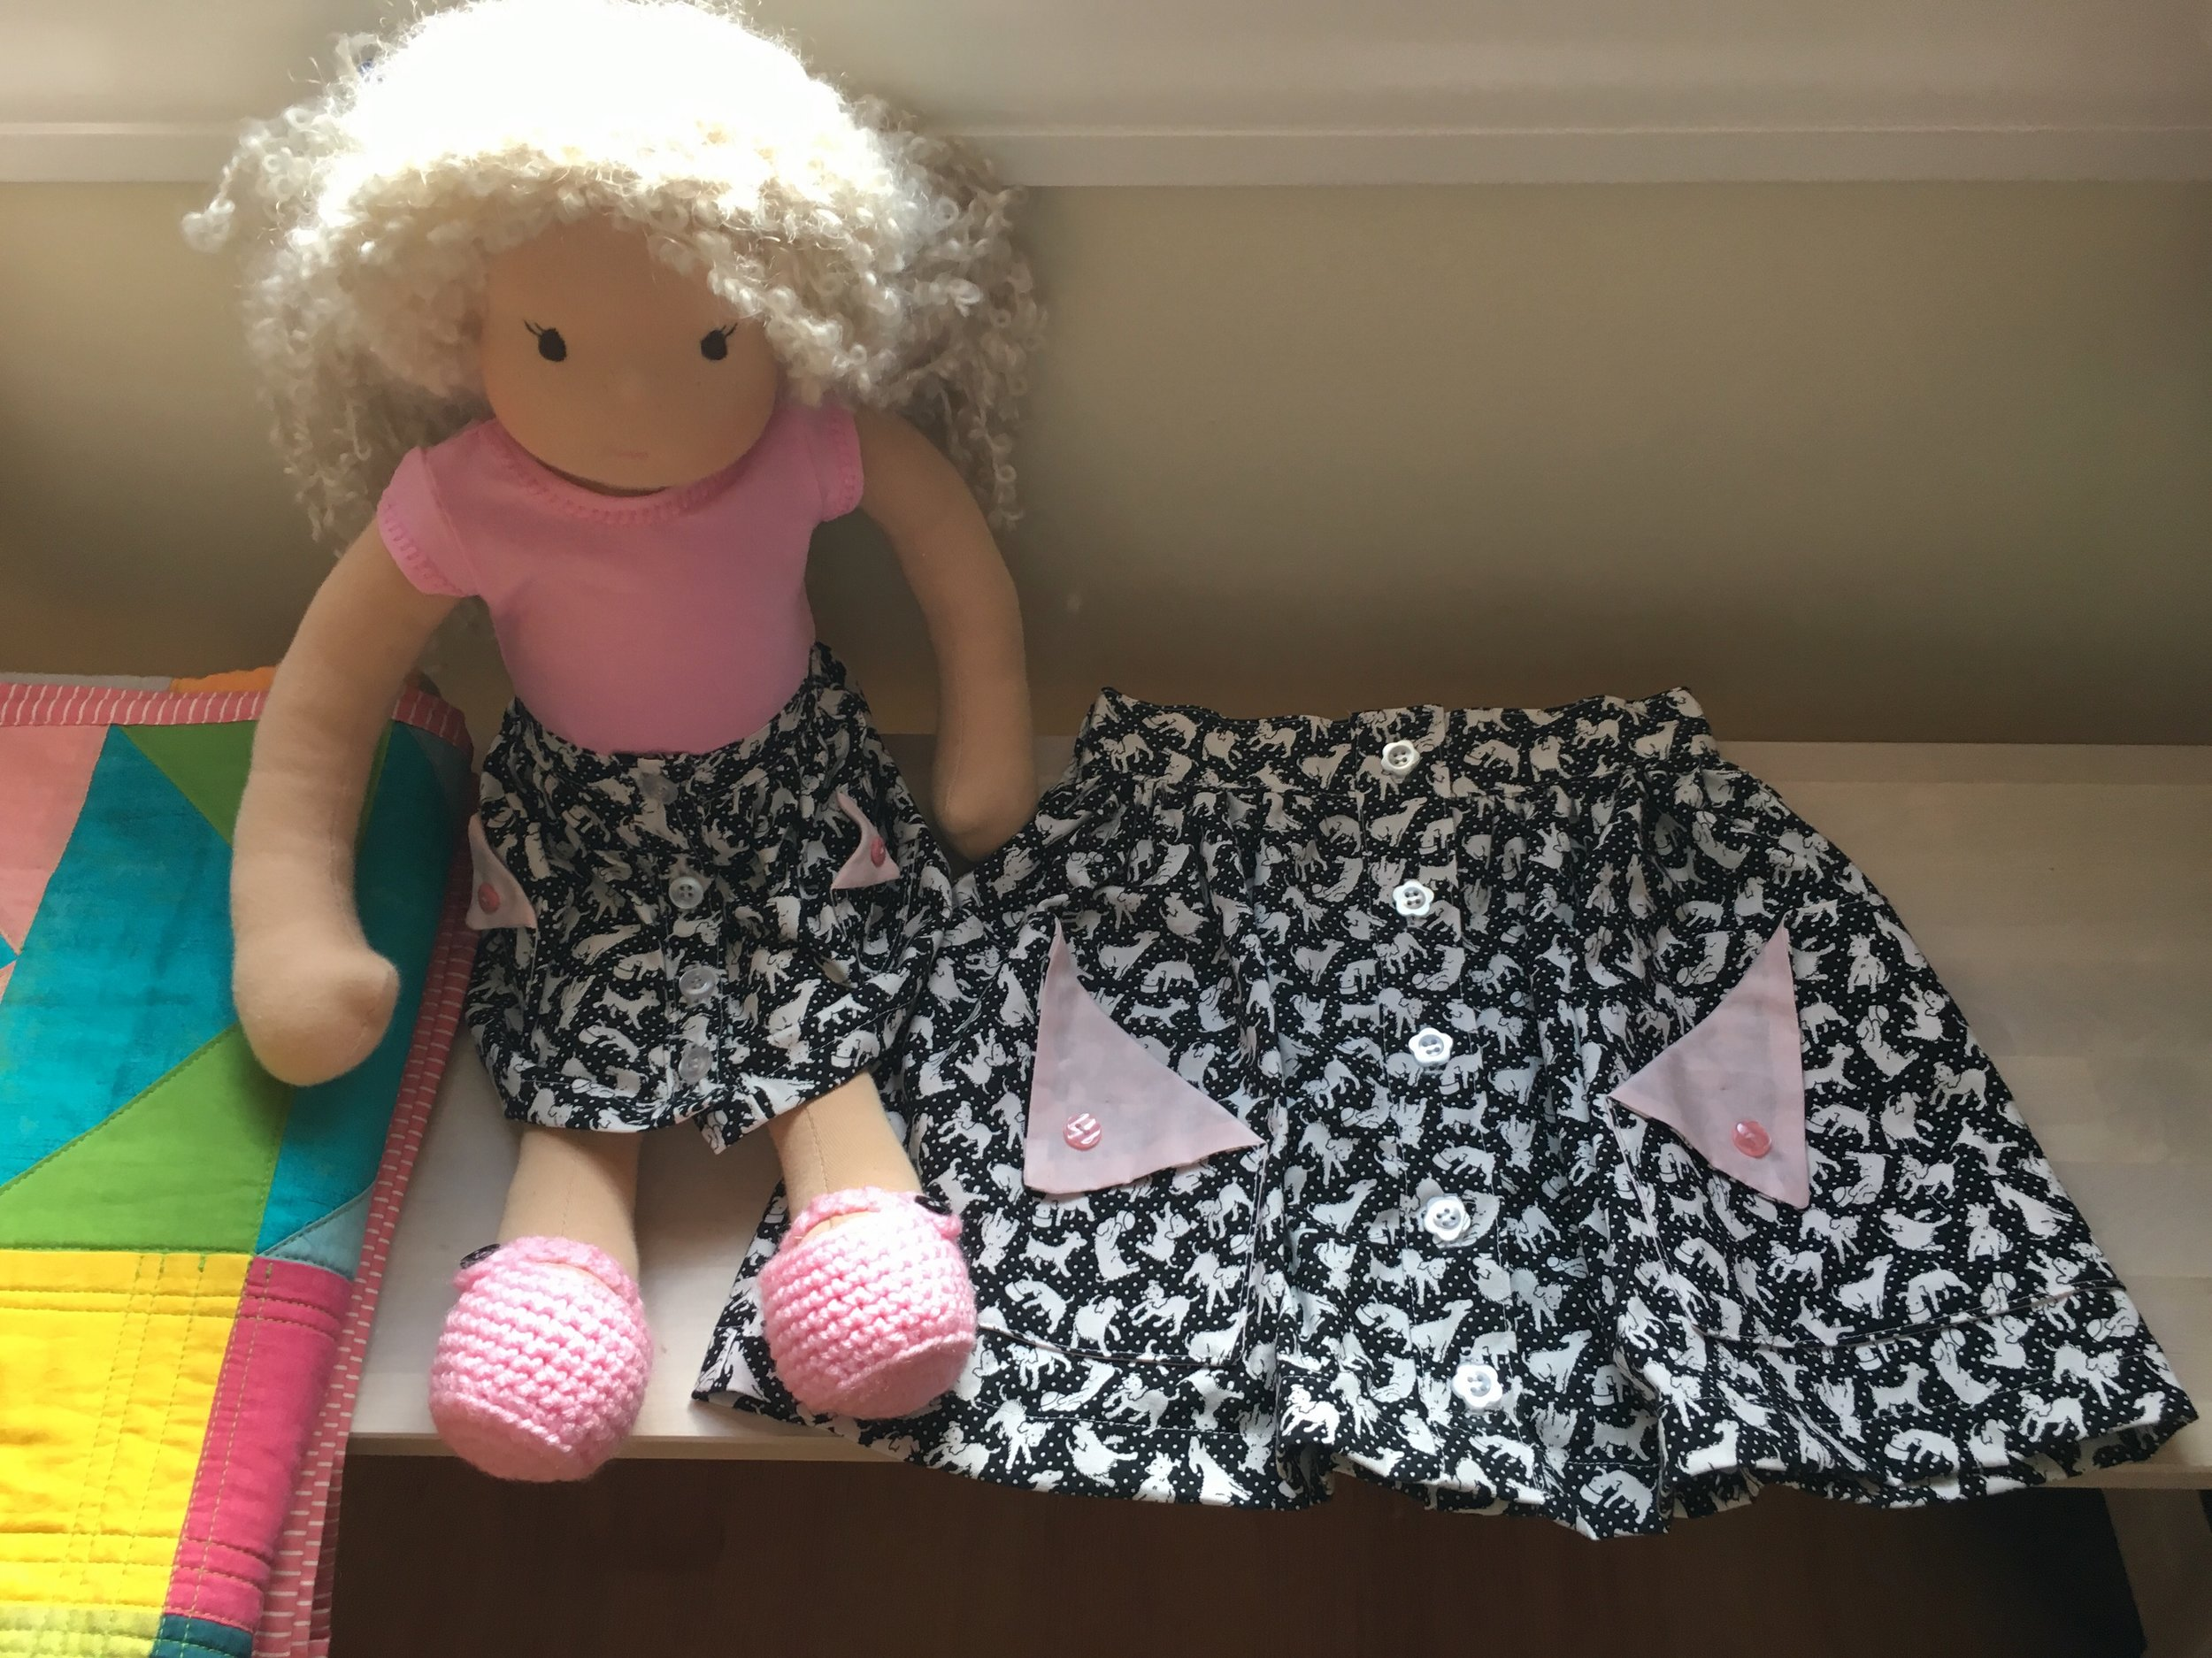 Olive ann designs Buttons Skirts and Pixie Faire T shirt. The doll is a Bamboletta Forever Friend.